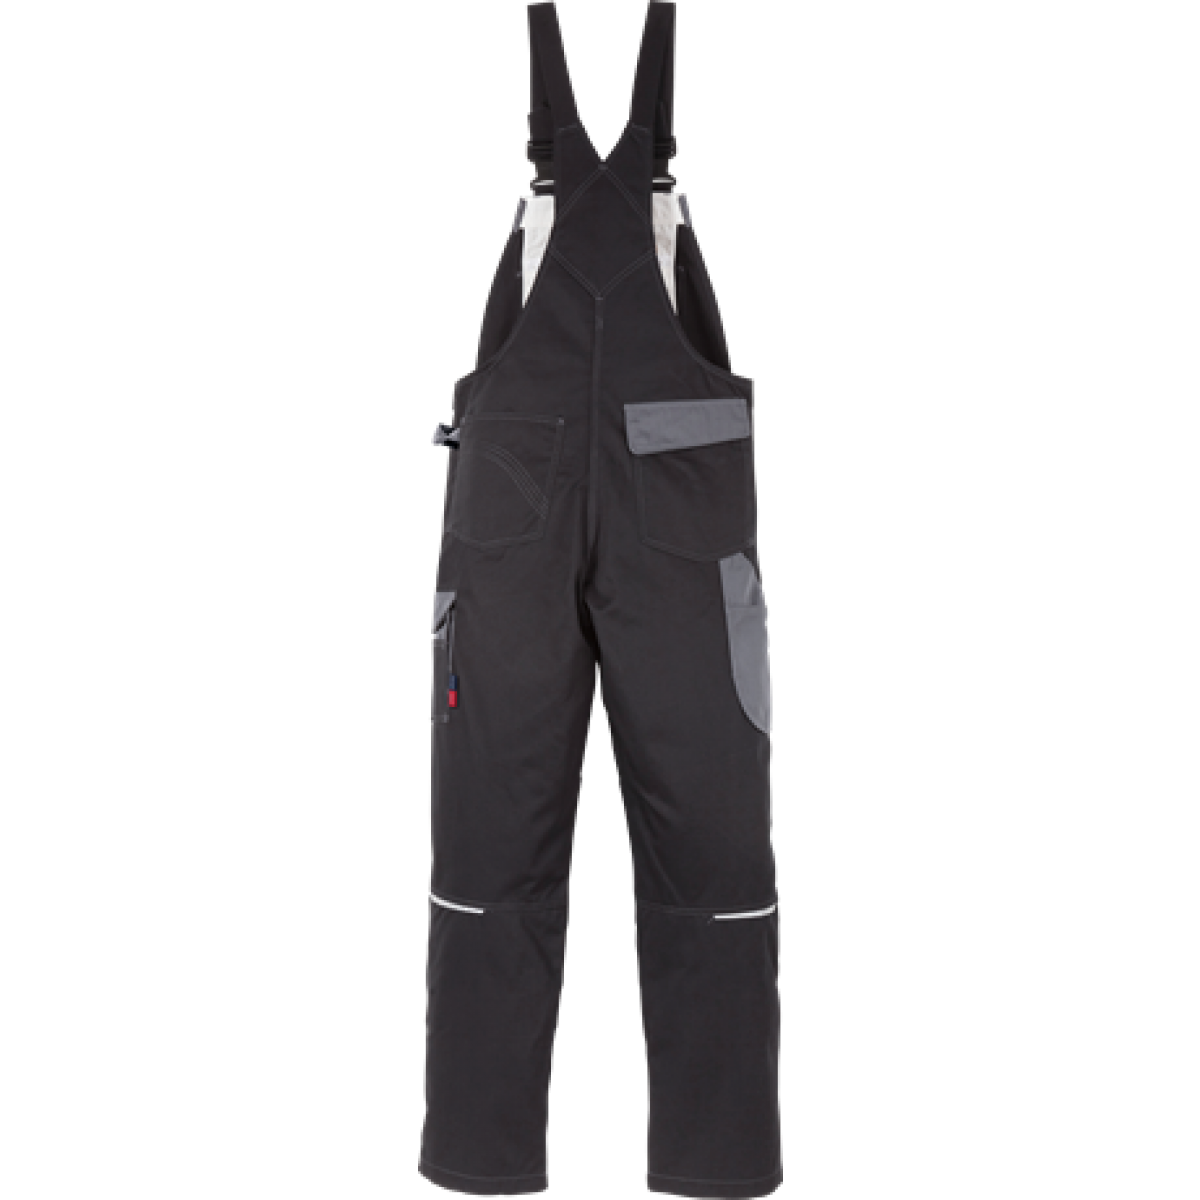 Kansas Icon Overalls Sort/Grå-33